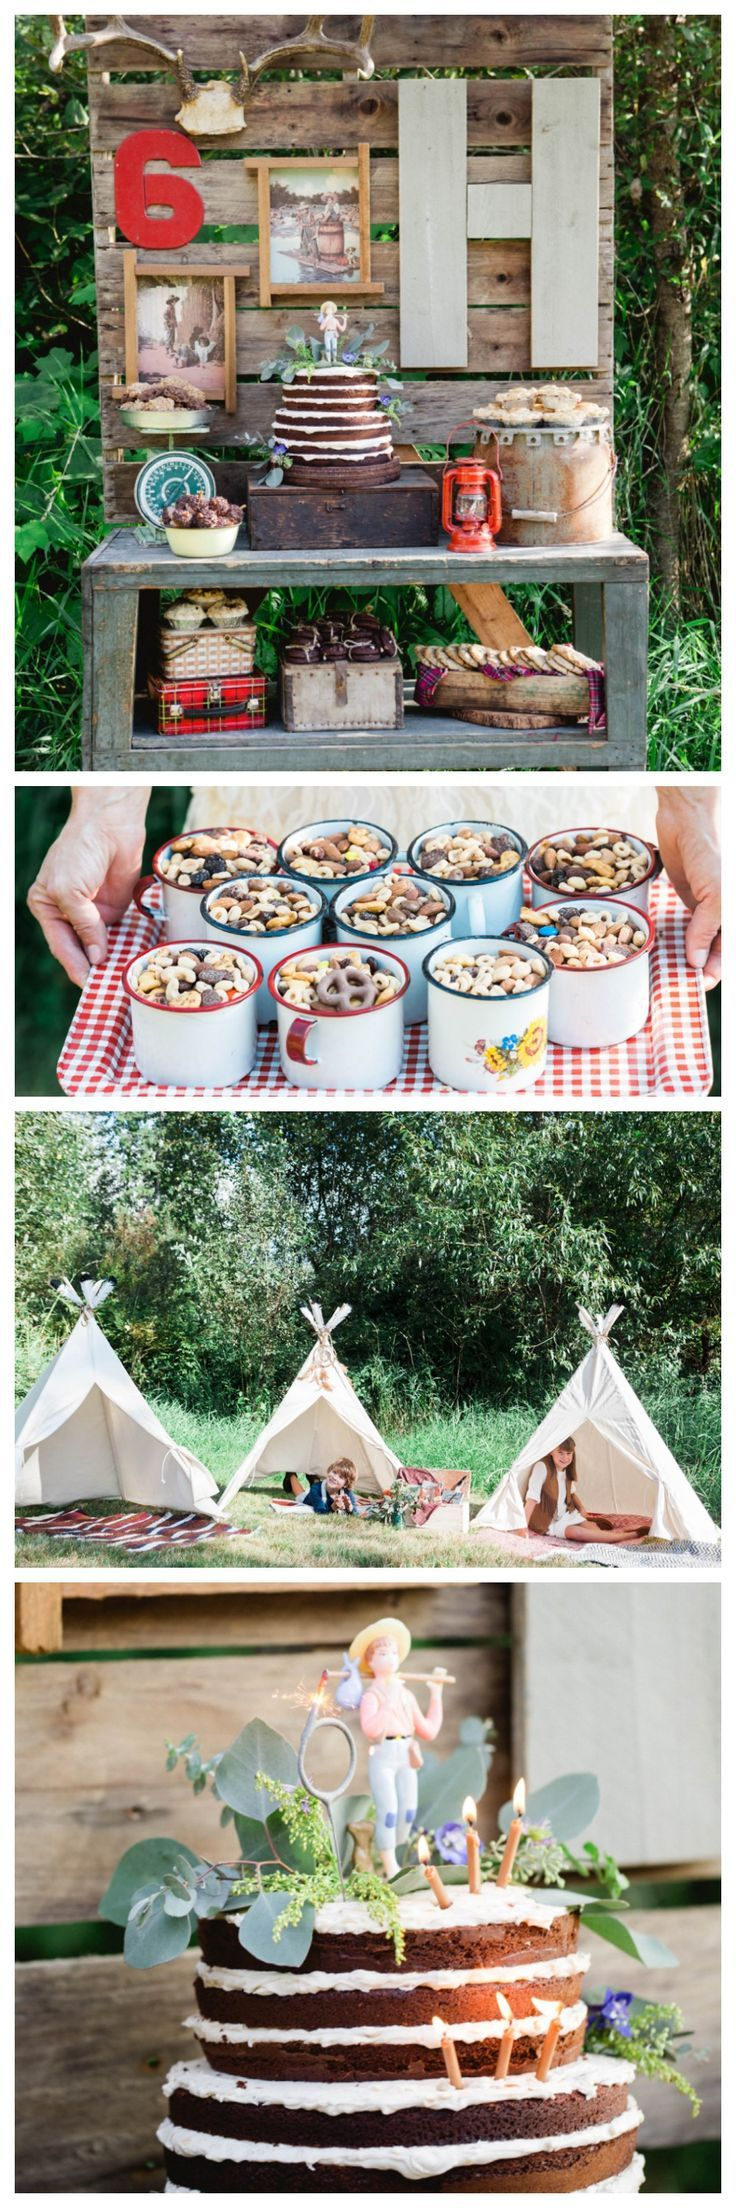 Ideas For An Adventure Themed Birthday Party